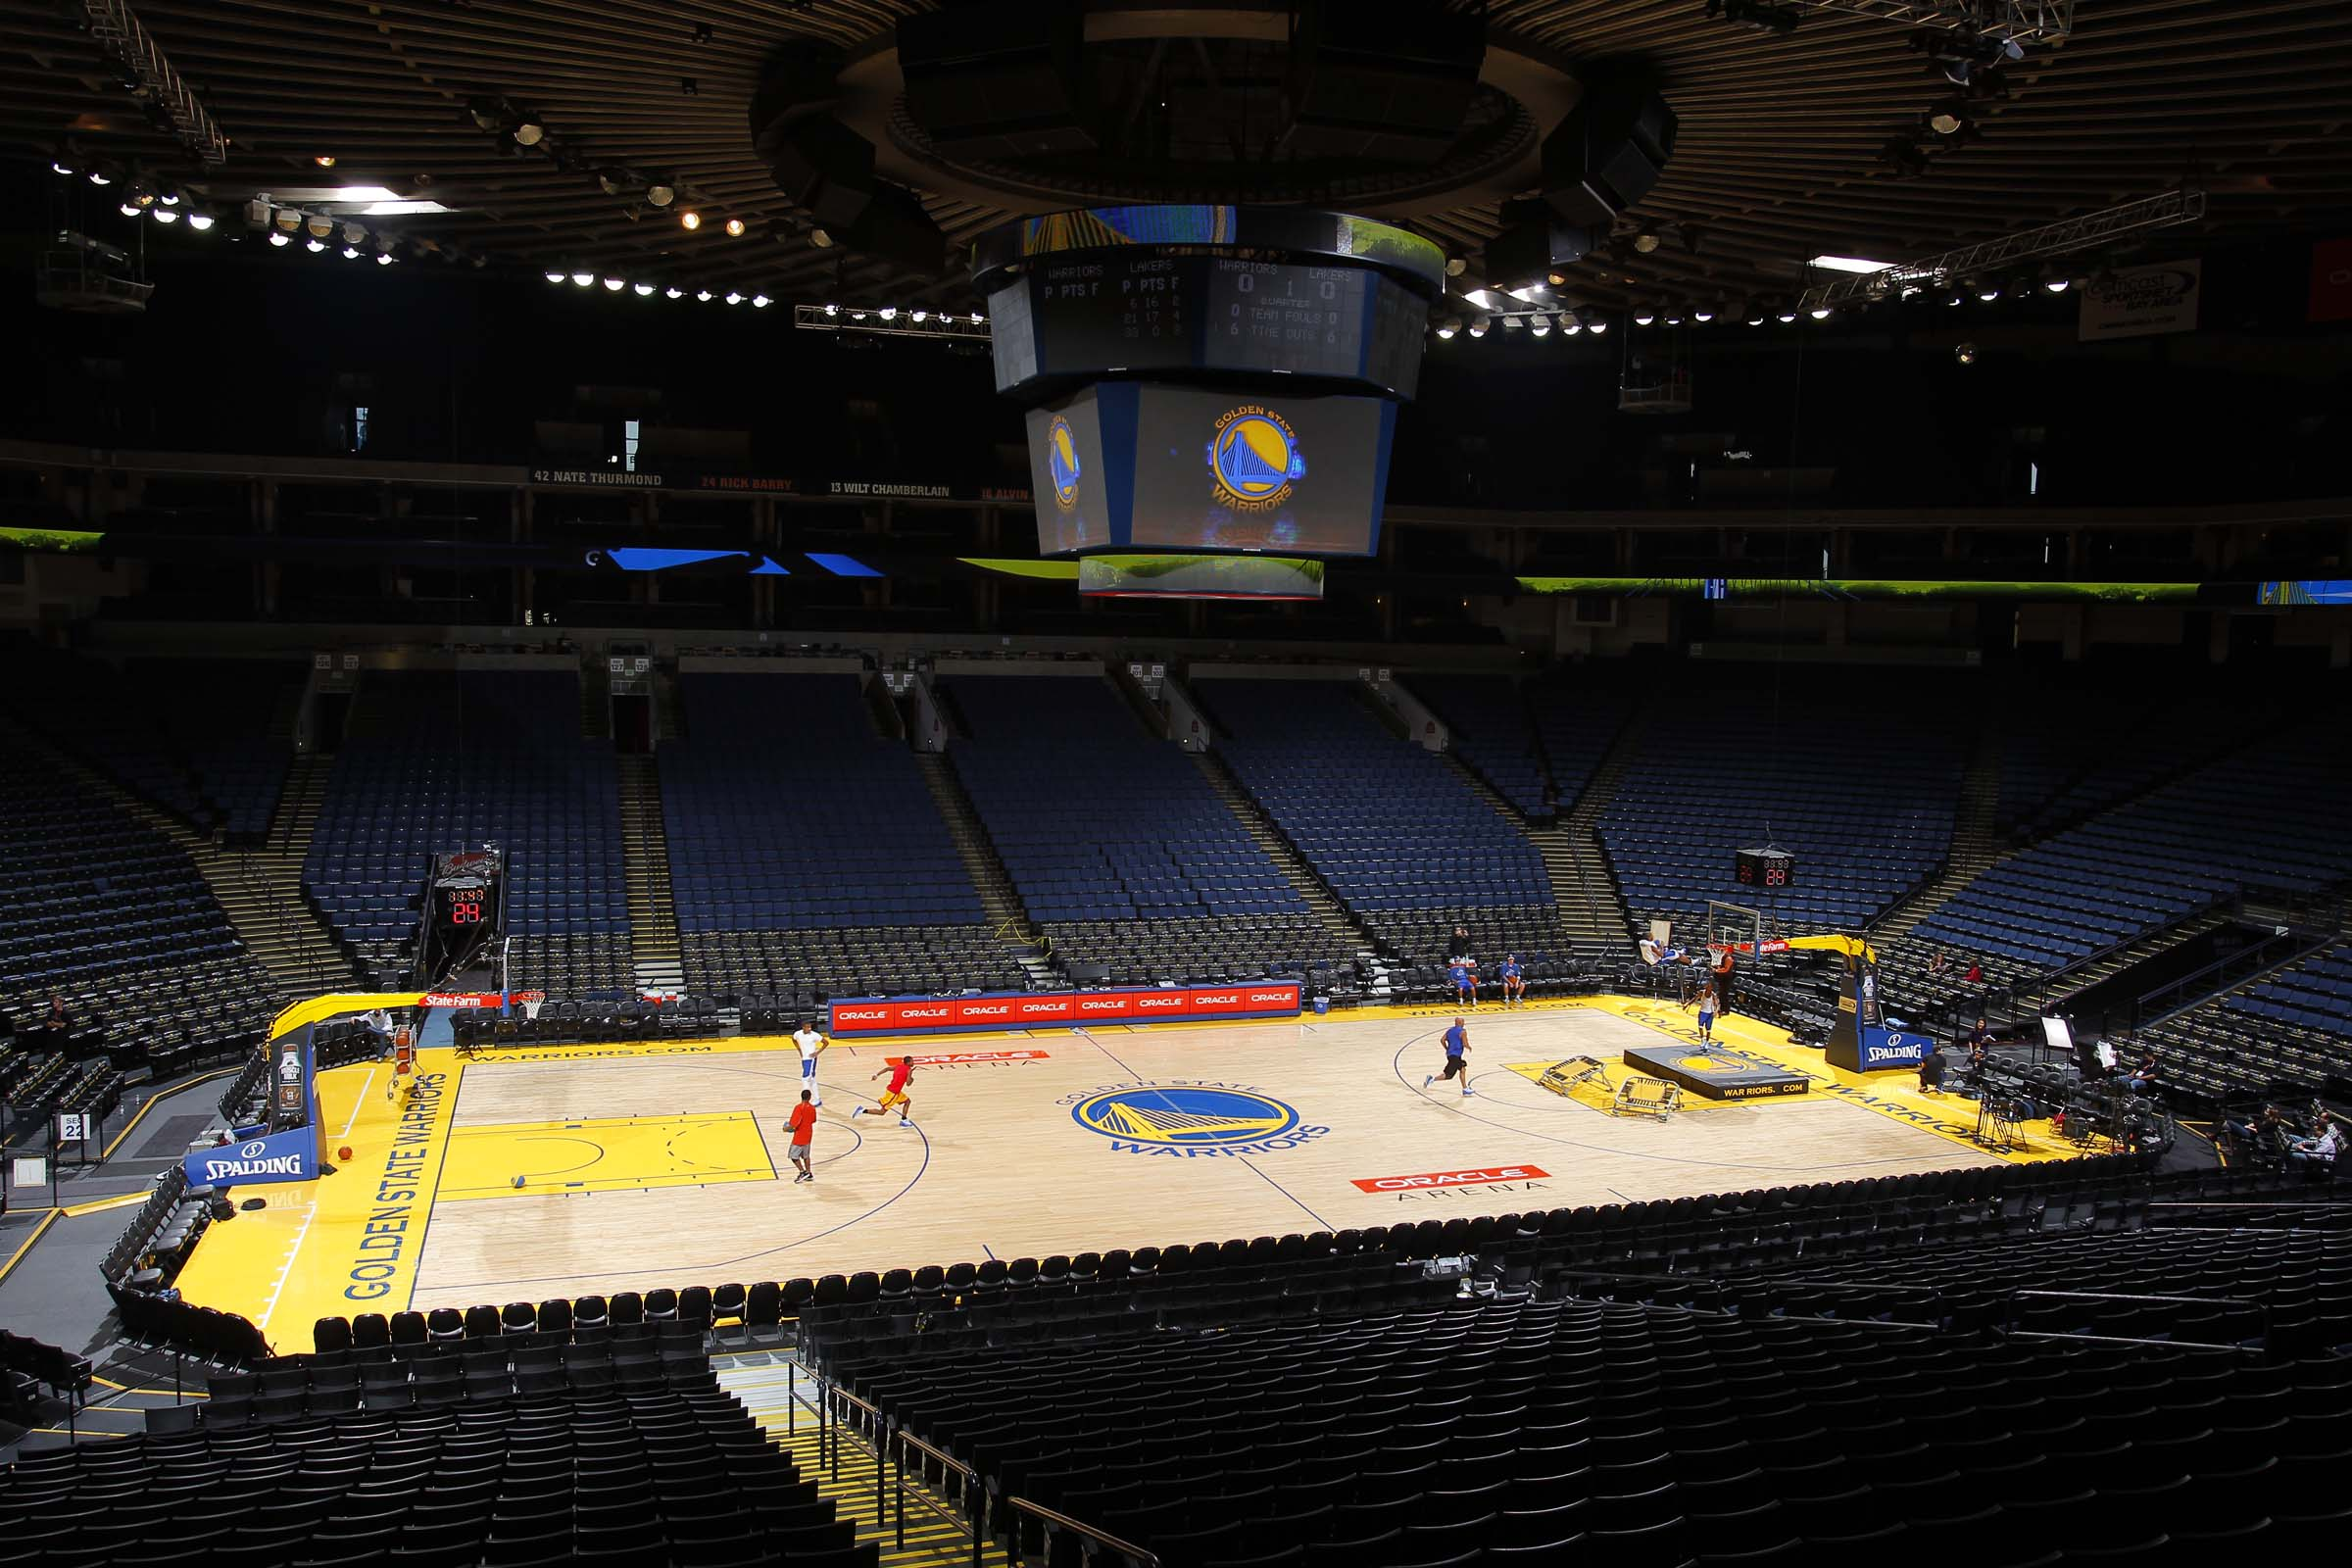 Connor Sport's Golden State Warriors Court